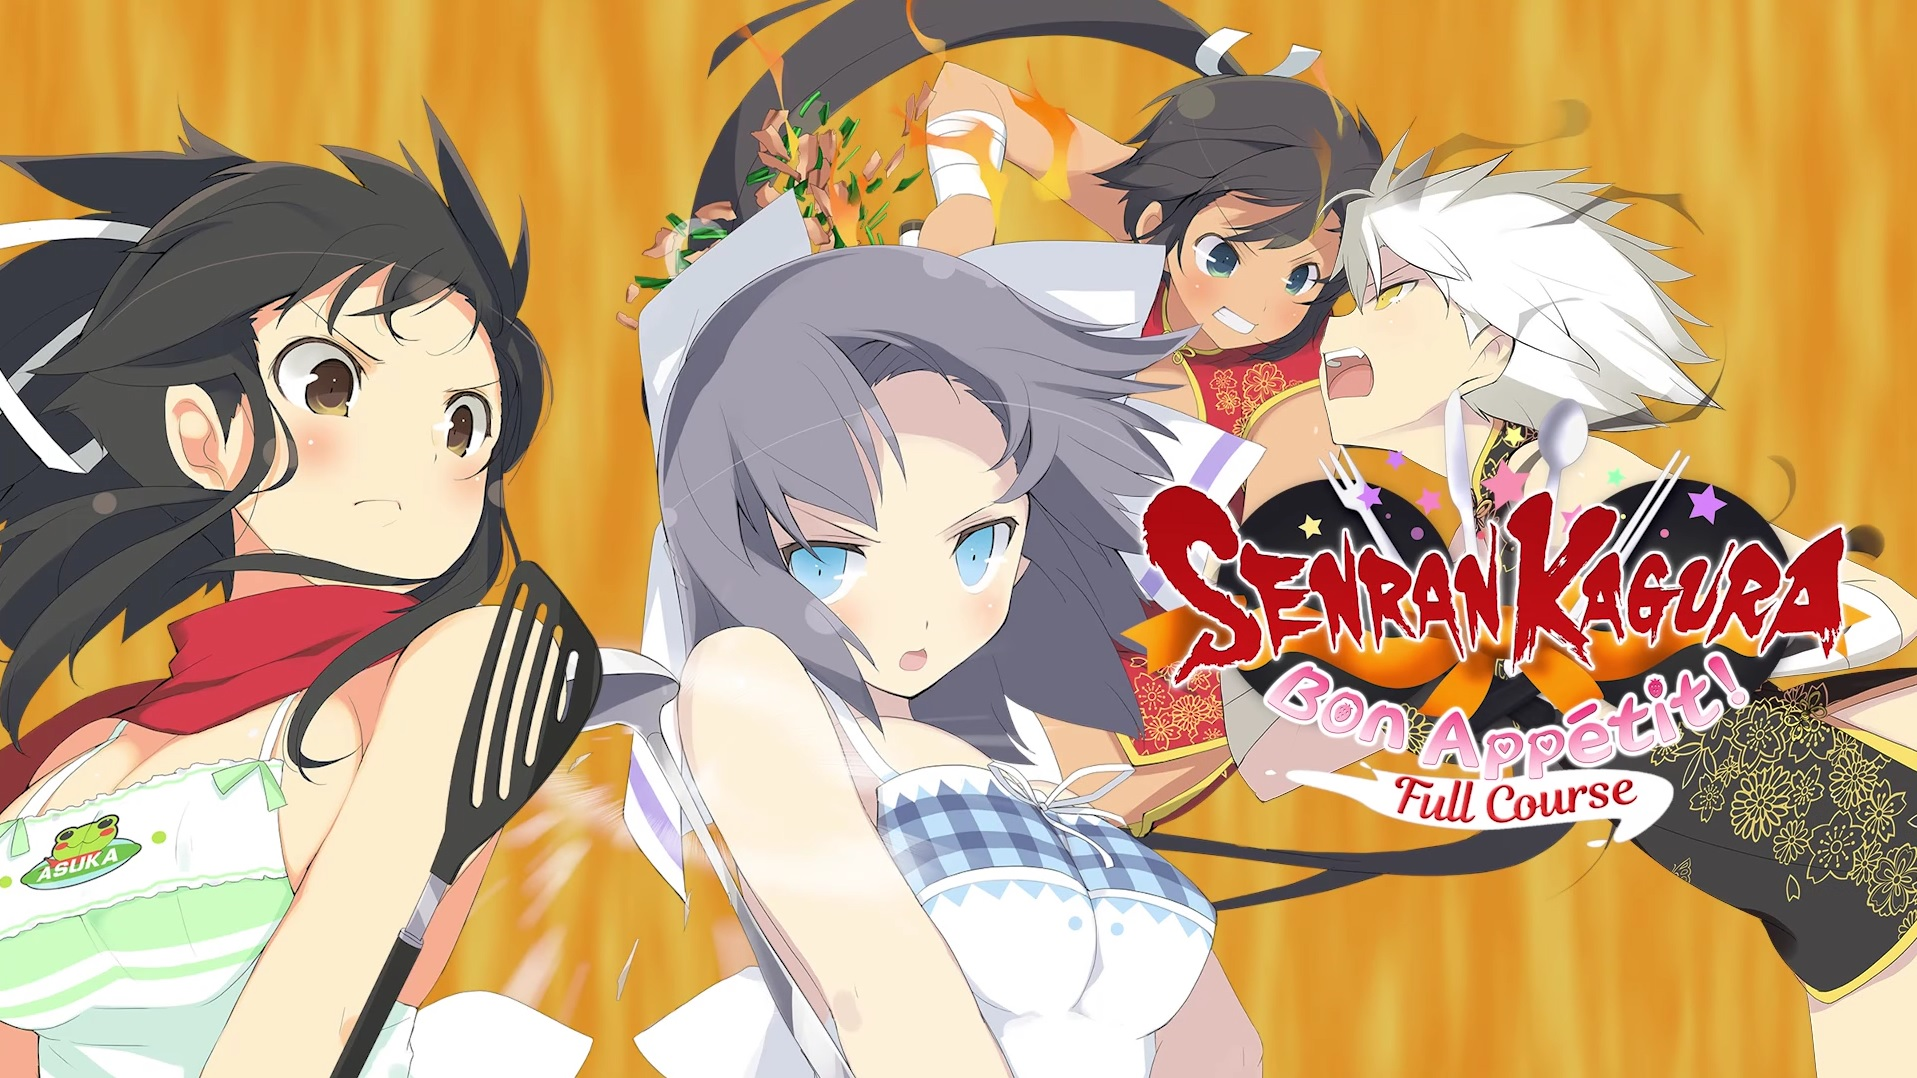 senran-kagura-bon-apetit-pc-artwork-002